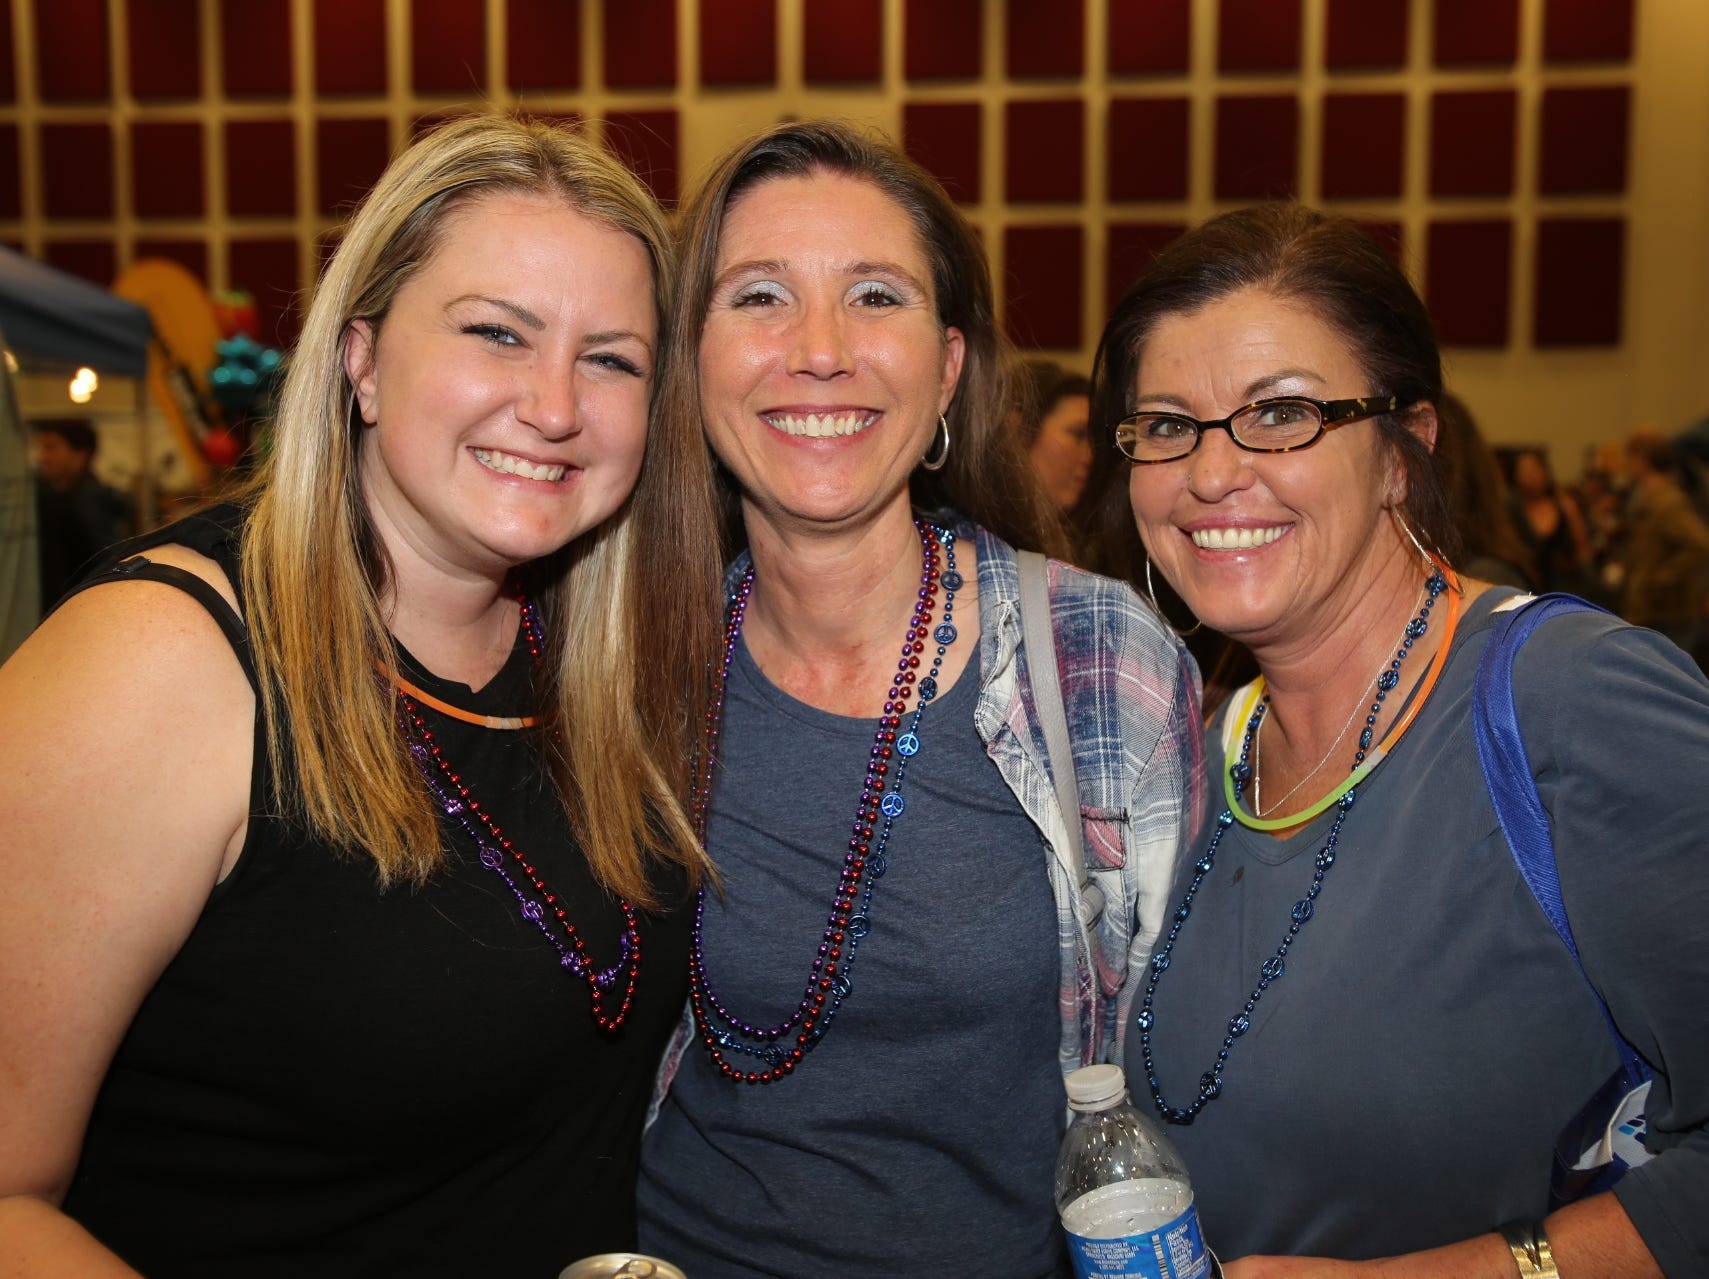 Ashley Franklin, Tanya Rust, and Kim Hassler